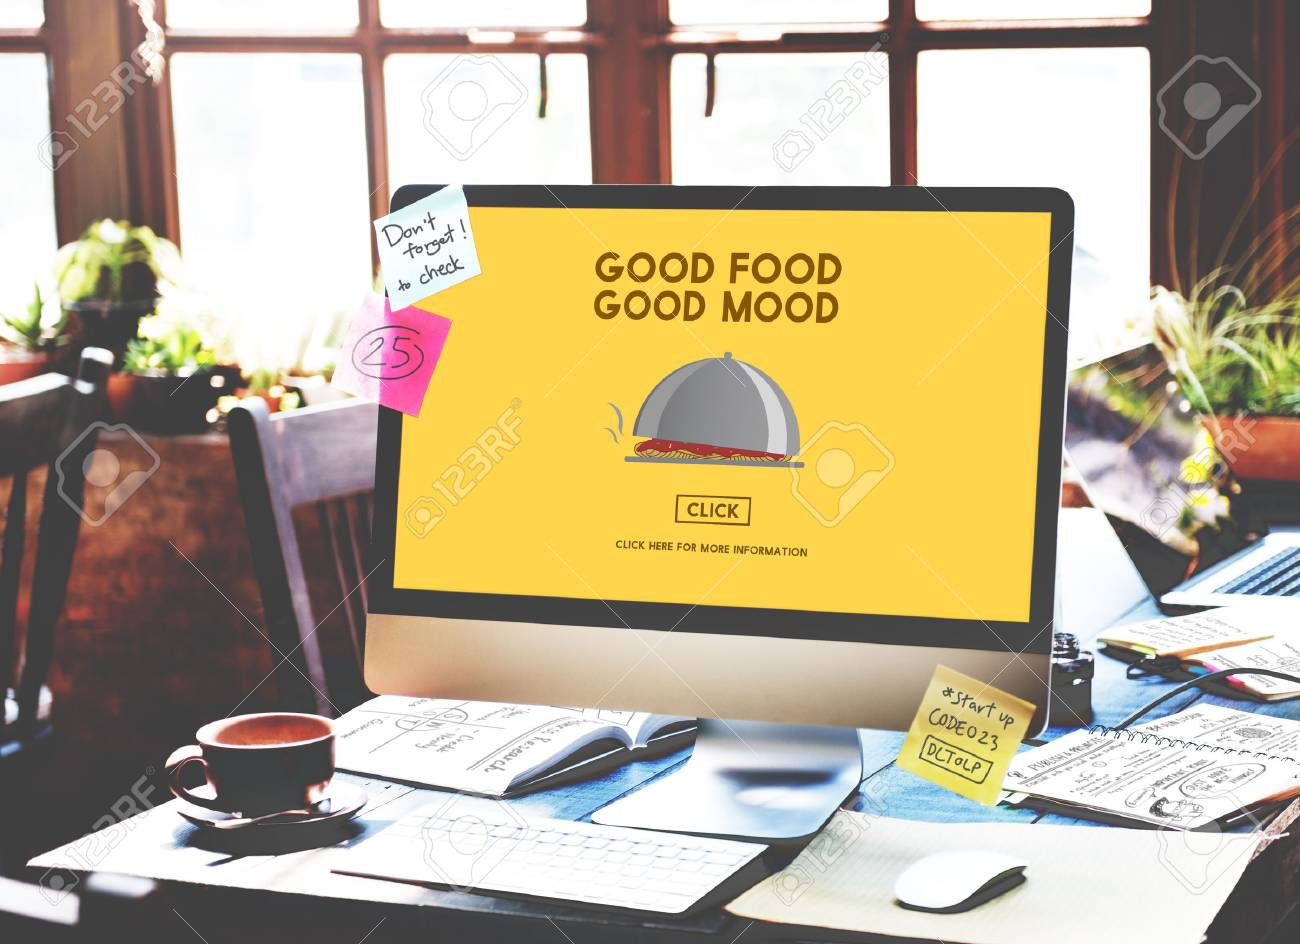 Food Good Mood Dining Restaurant Nutrition Cafe Concept Stock Photo